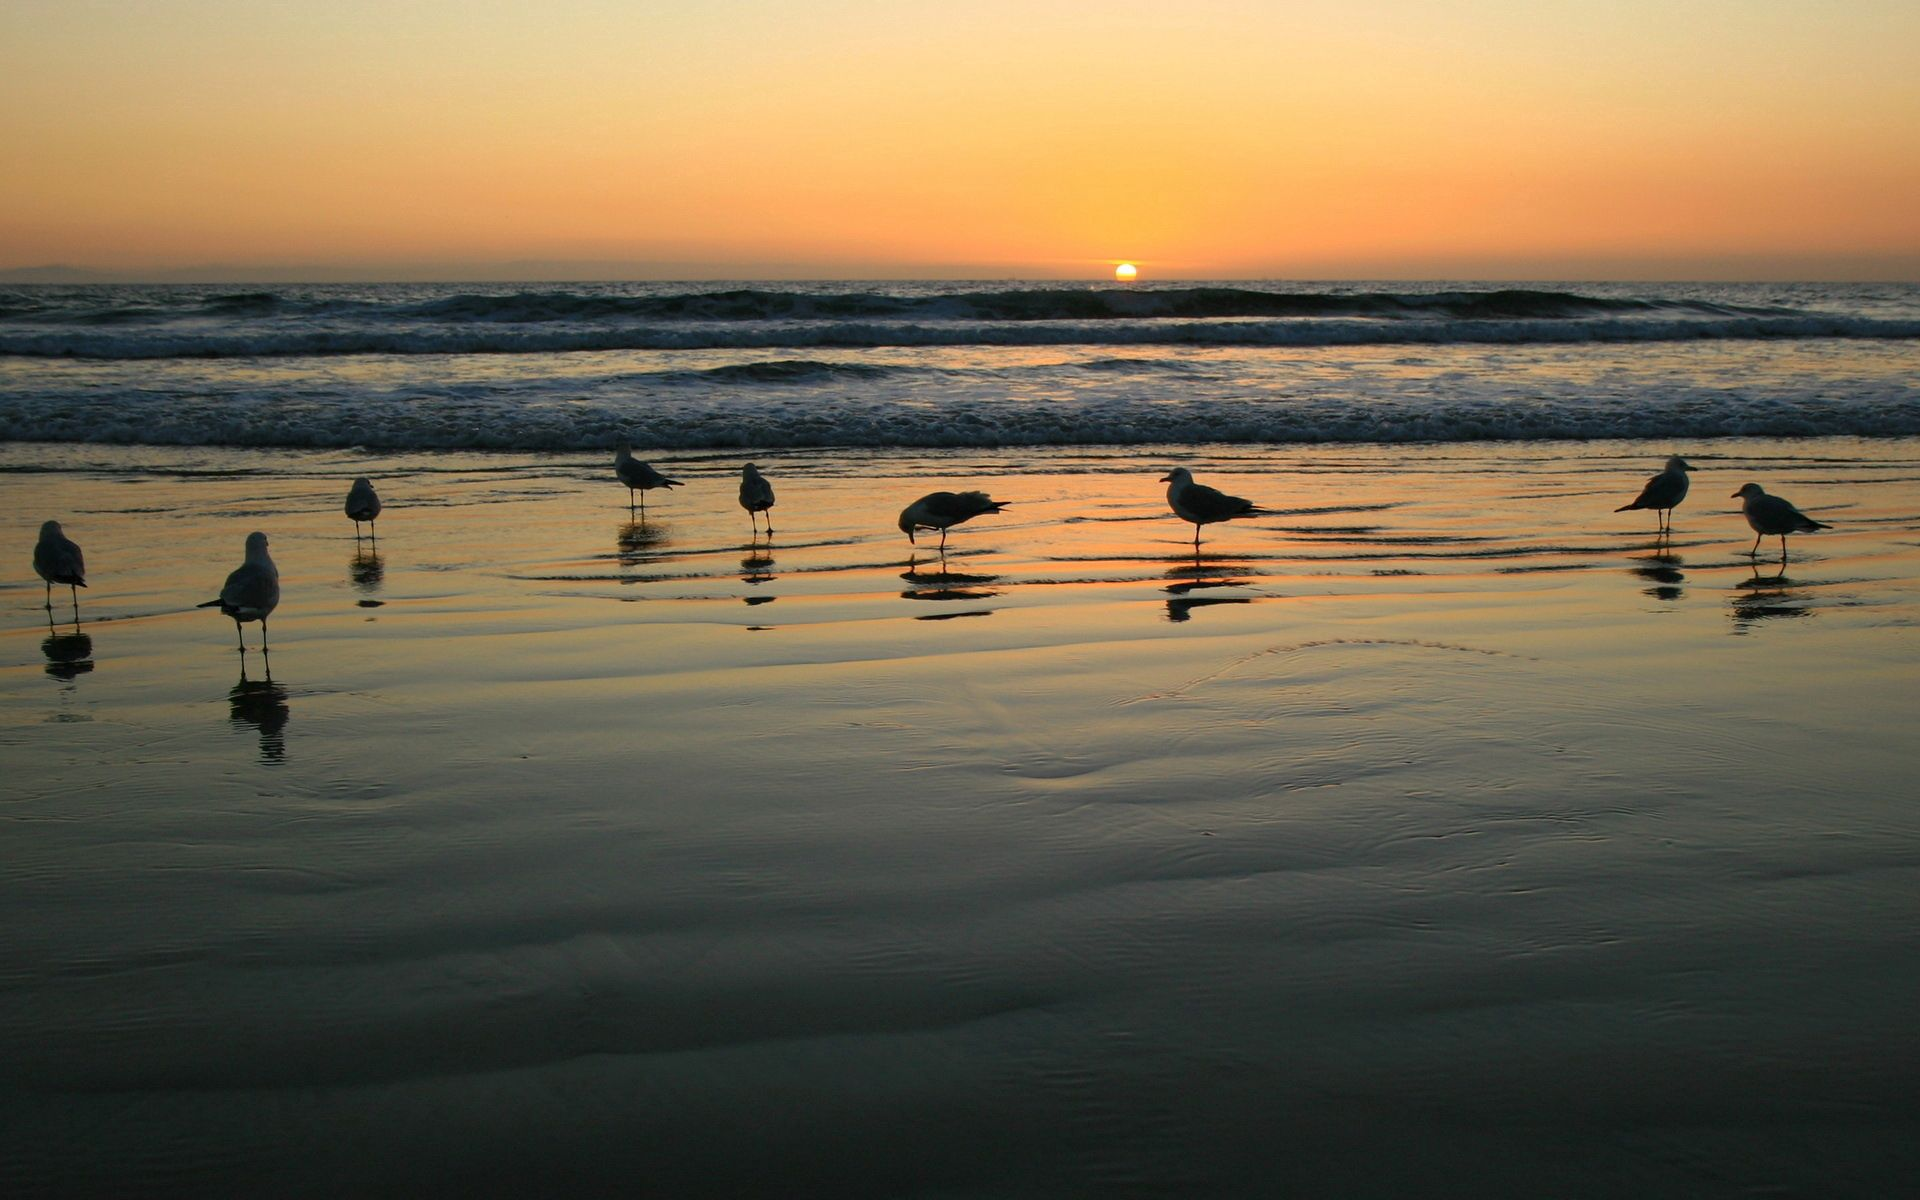 142665 download wallpaper Nature, Evening, Sand, Wet, Seagulls screensavers and pictures for free